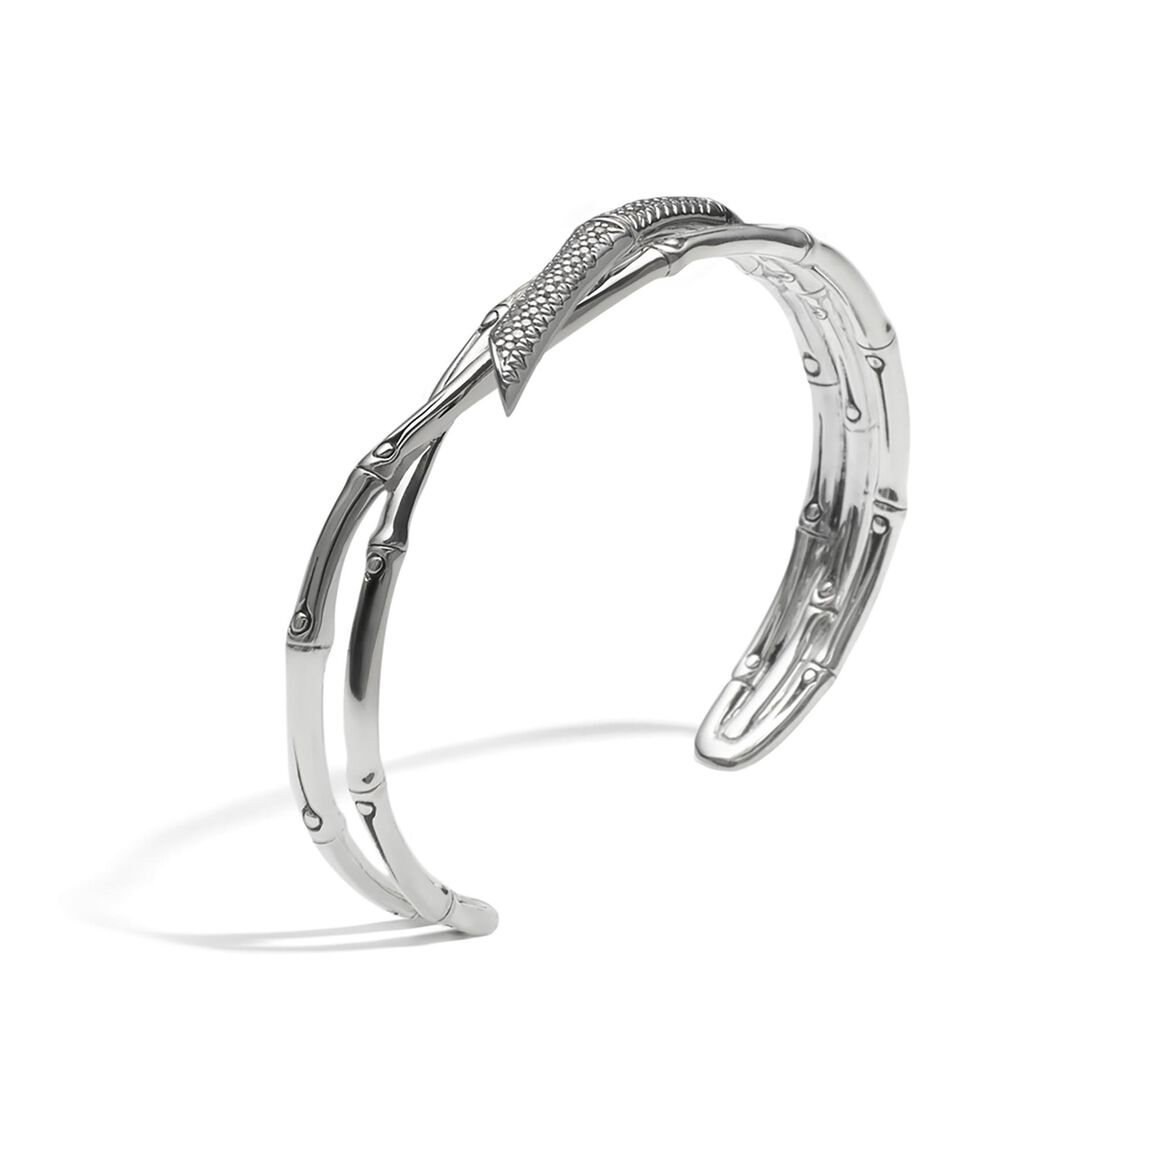 Bamboo 11.5MM Cuff in Silver with Diamonds